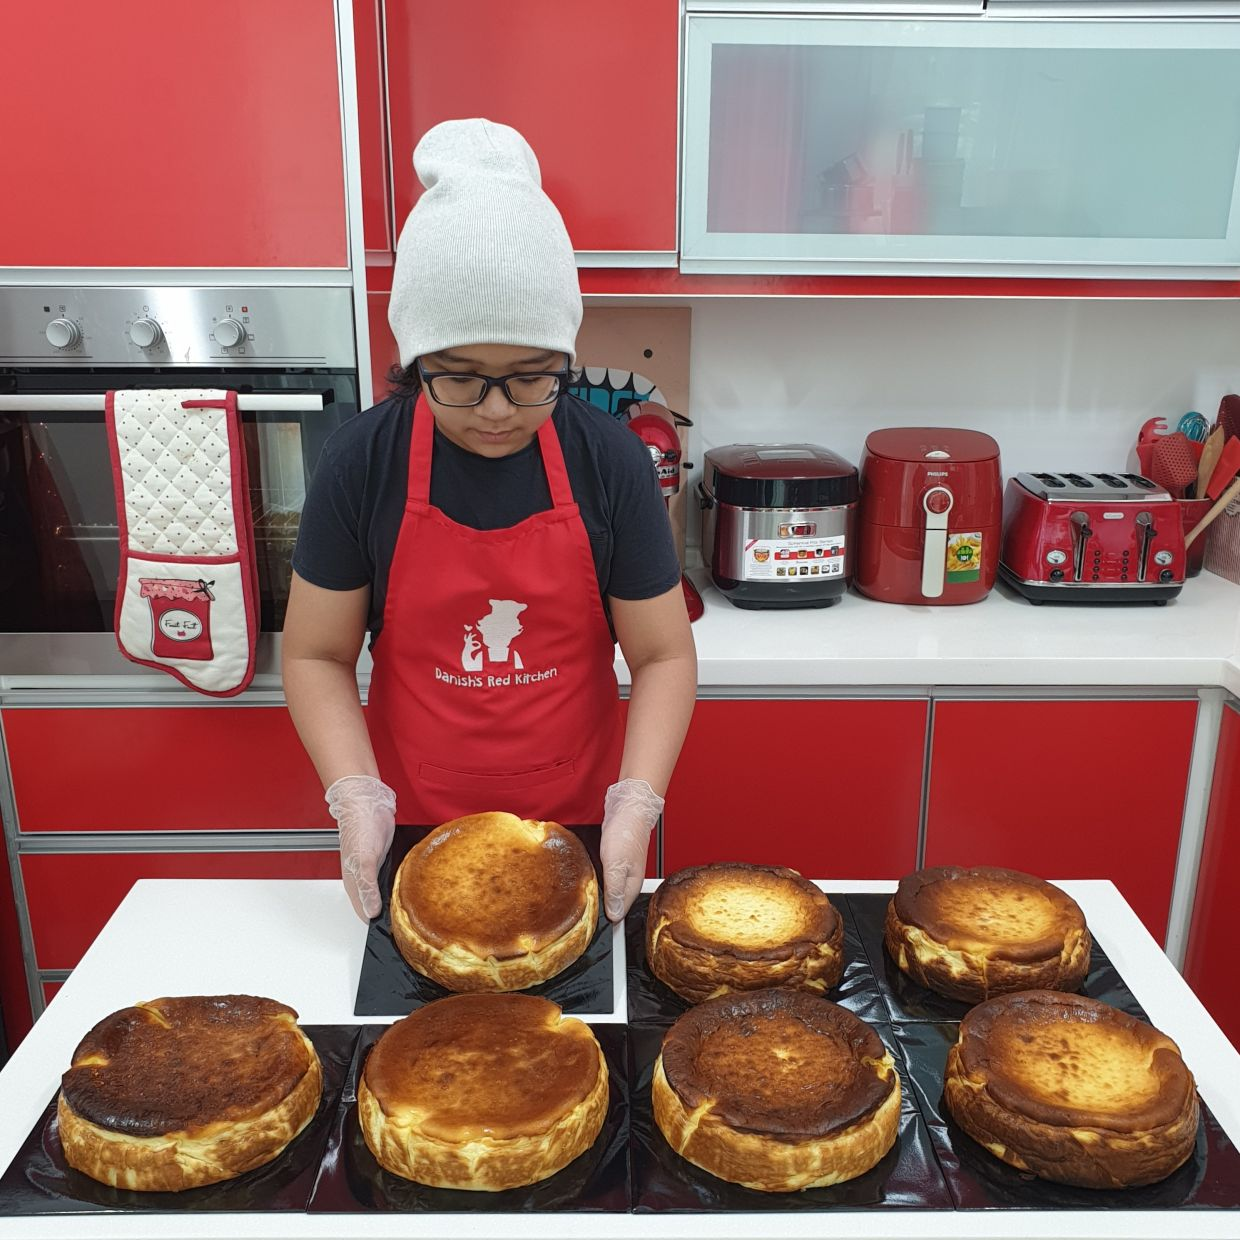 Danish, who has never had formal cooking lessons, often shares recipes like baked cheesecake on social media.